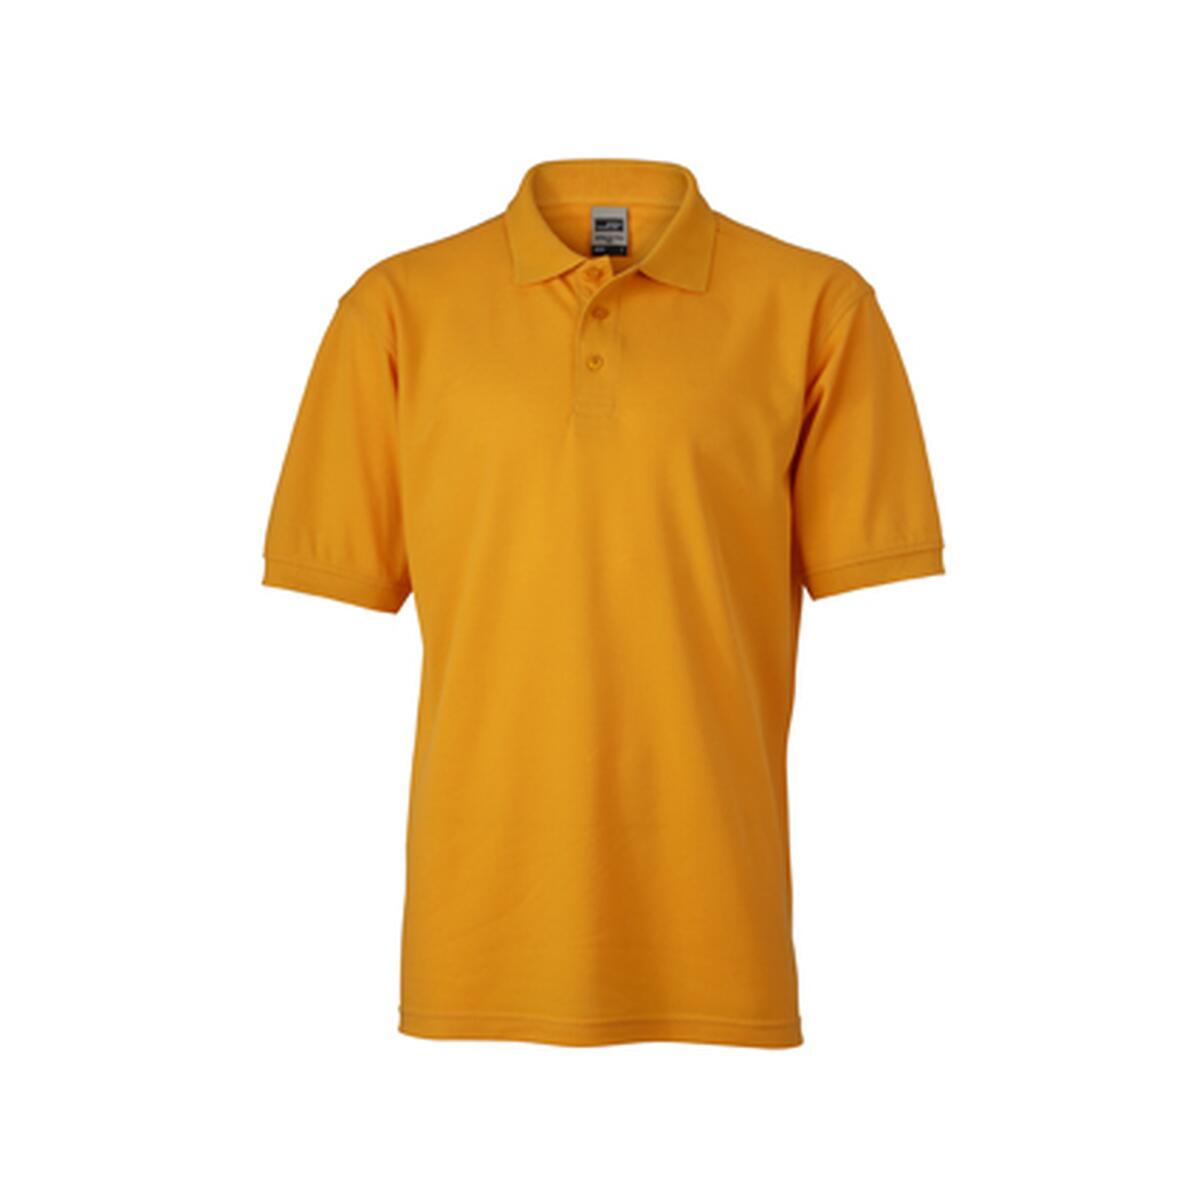 James Nicholson Men S Workwear Polo Gelb 18 42